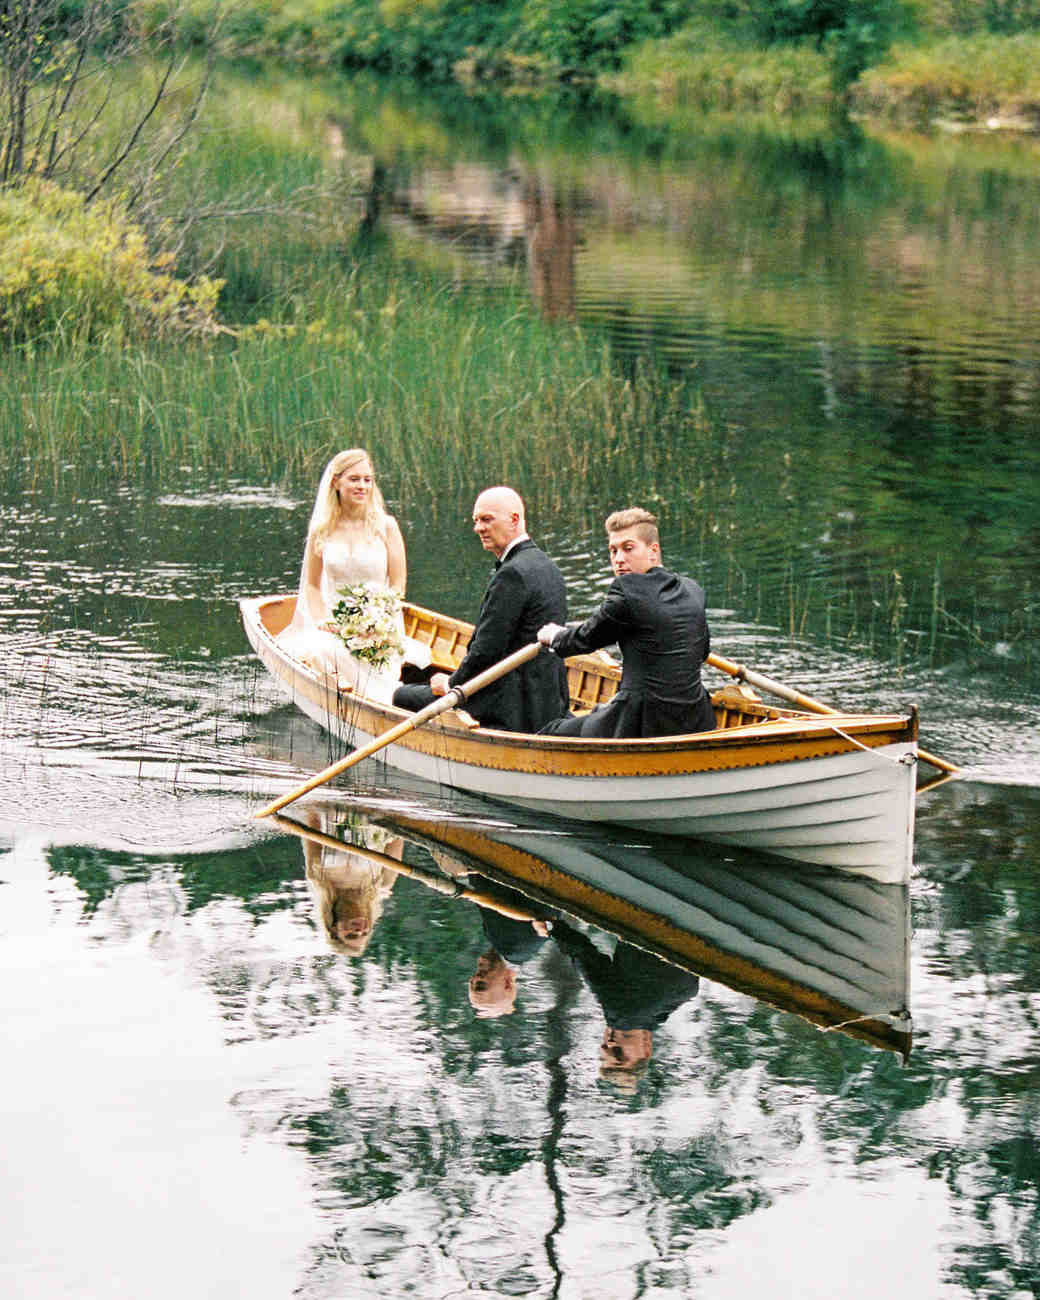 adele seth wedding michigan canoe